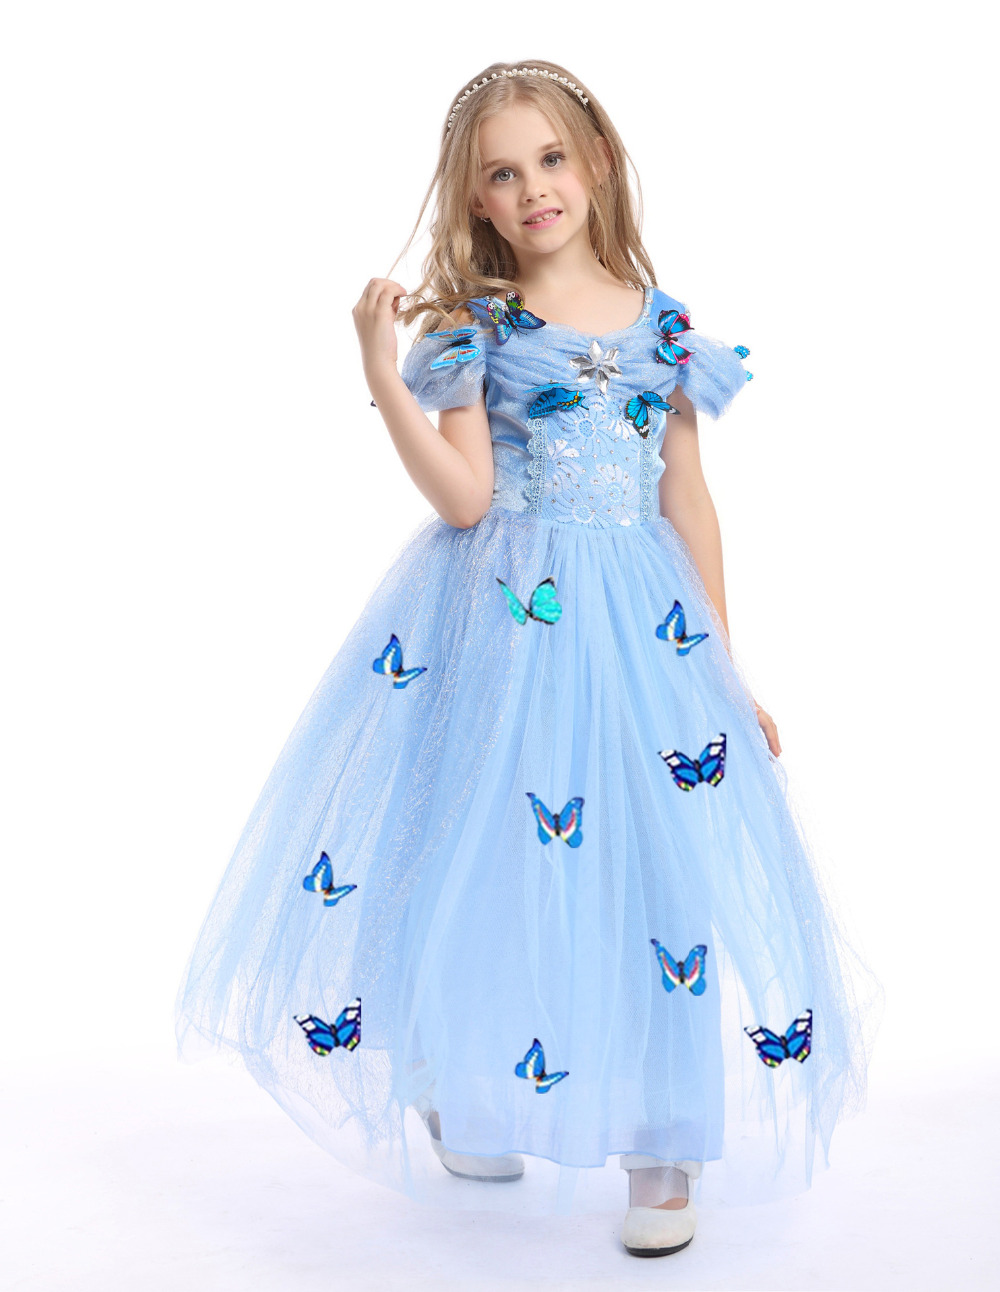 Long dress for party 4 kids